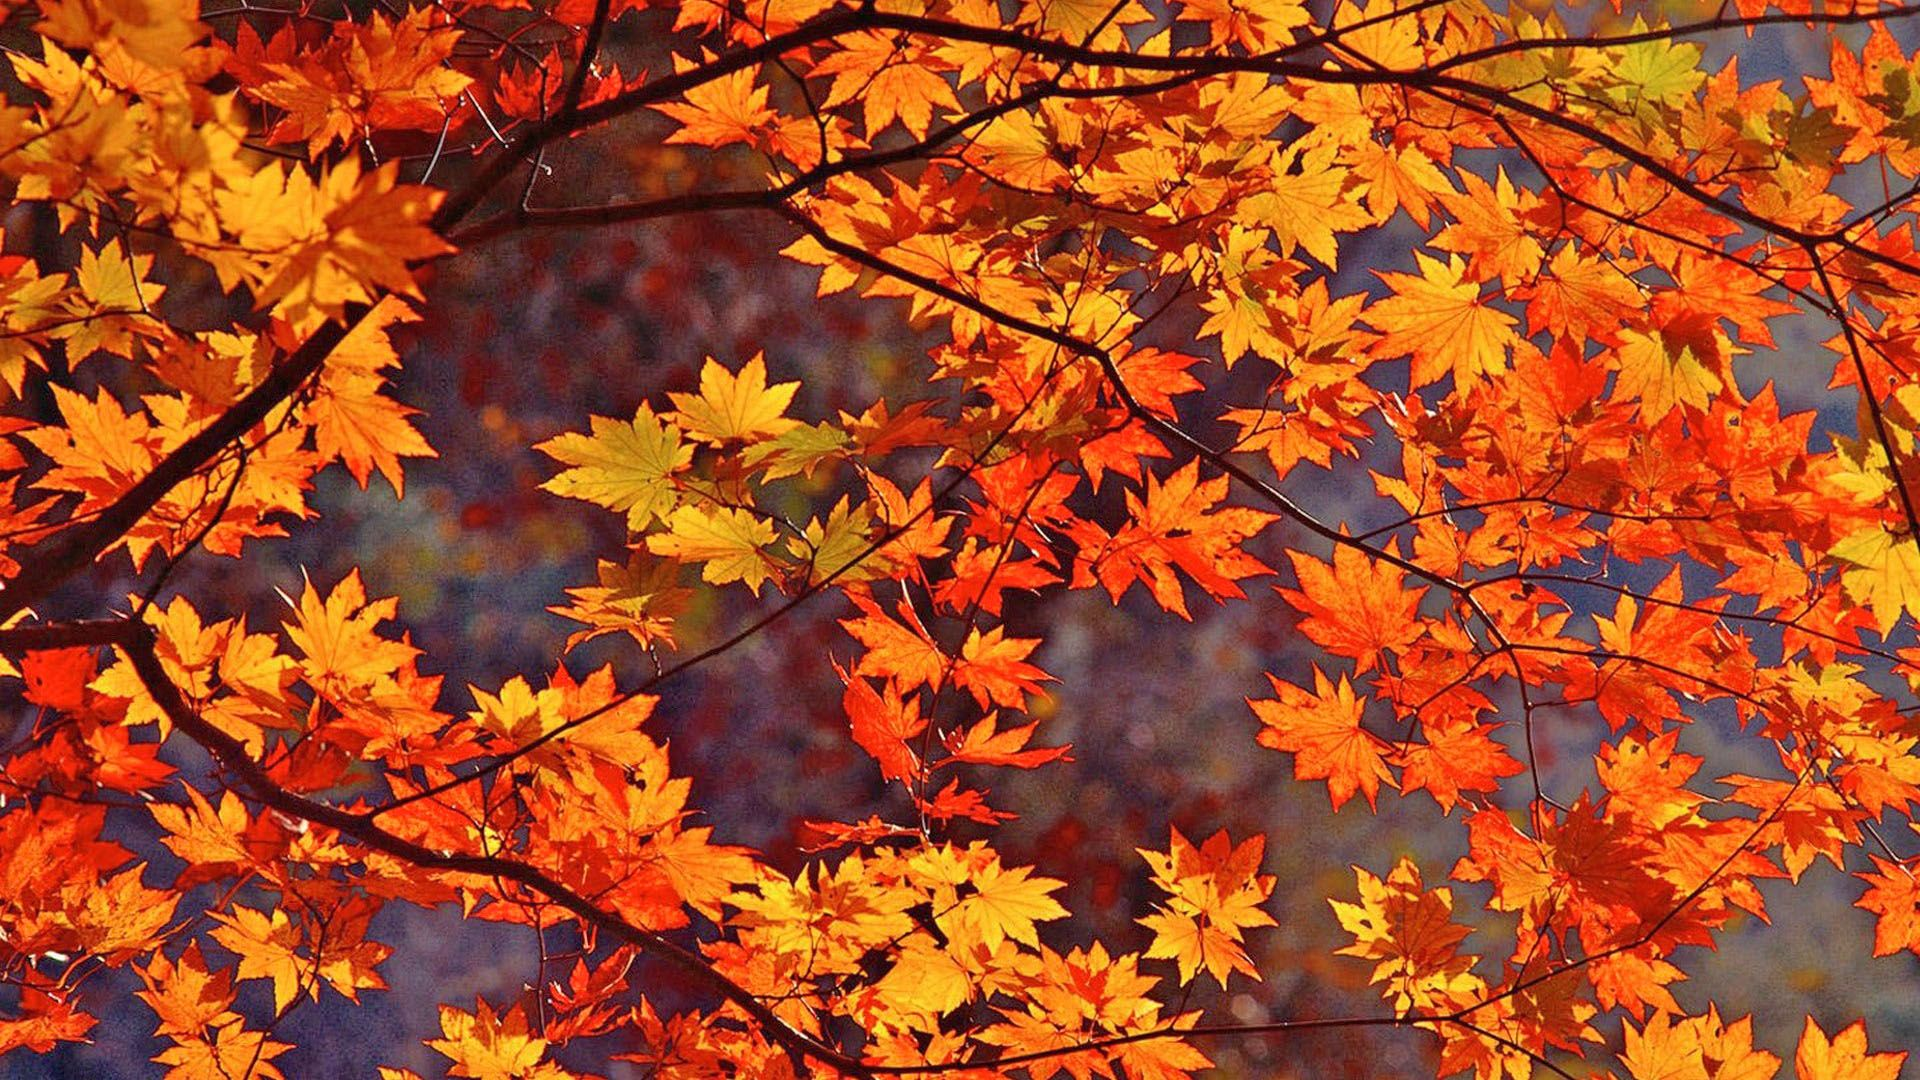 22 Reasons To Love Fall Wallpaper Fall wallpaper and Iphone